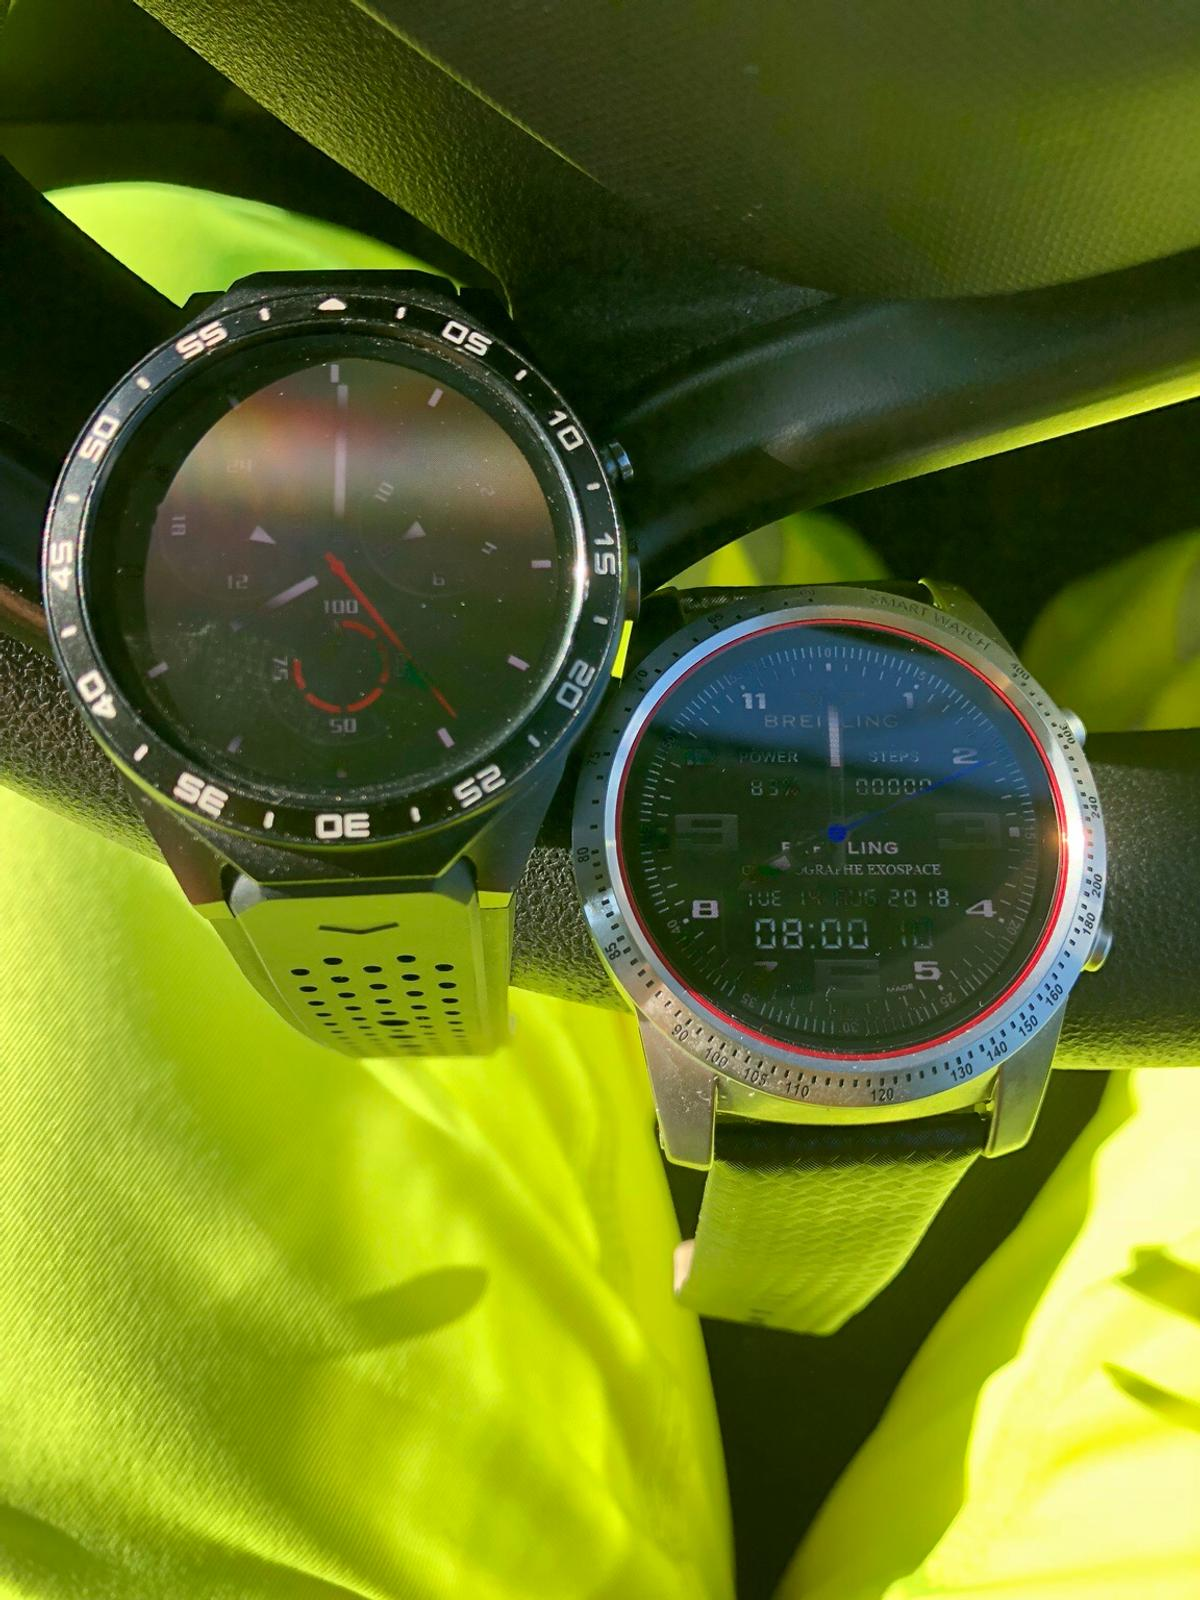 Kw88 and kw99 smart watches for sale in SS7 Point für £ 60